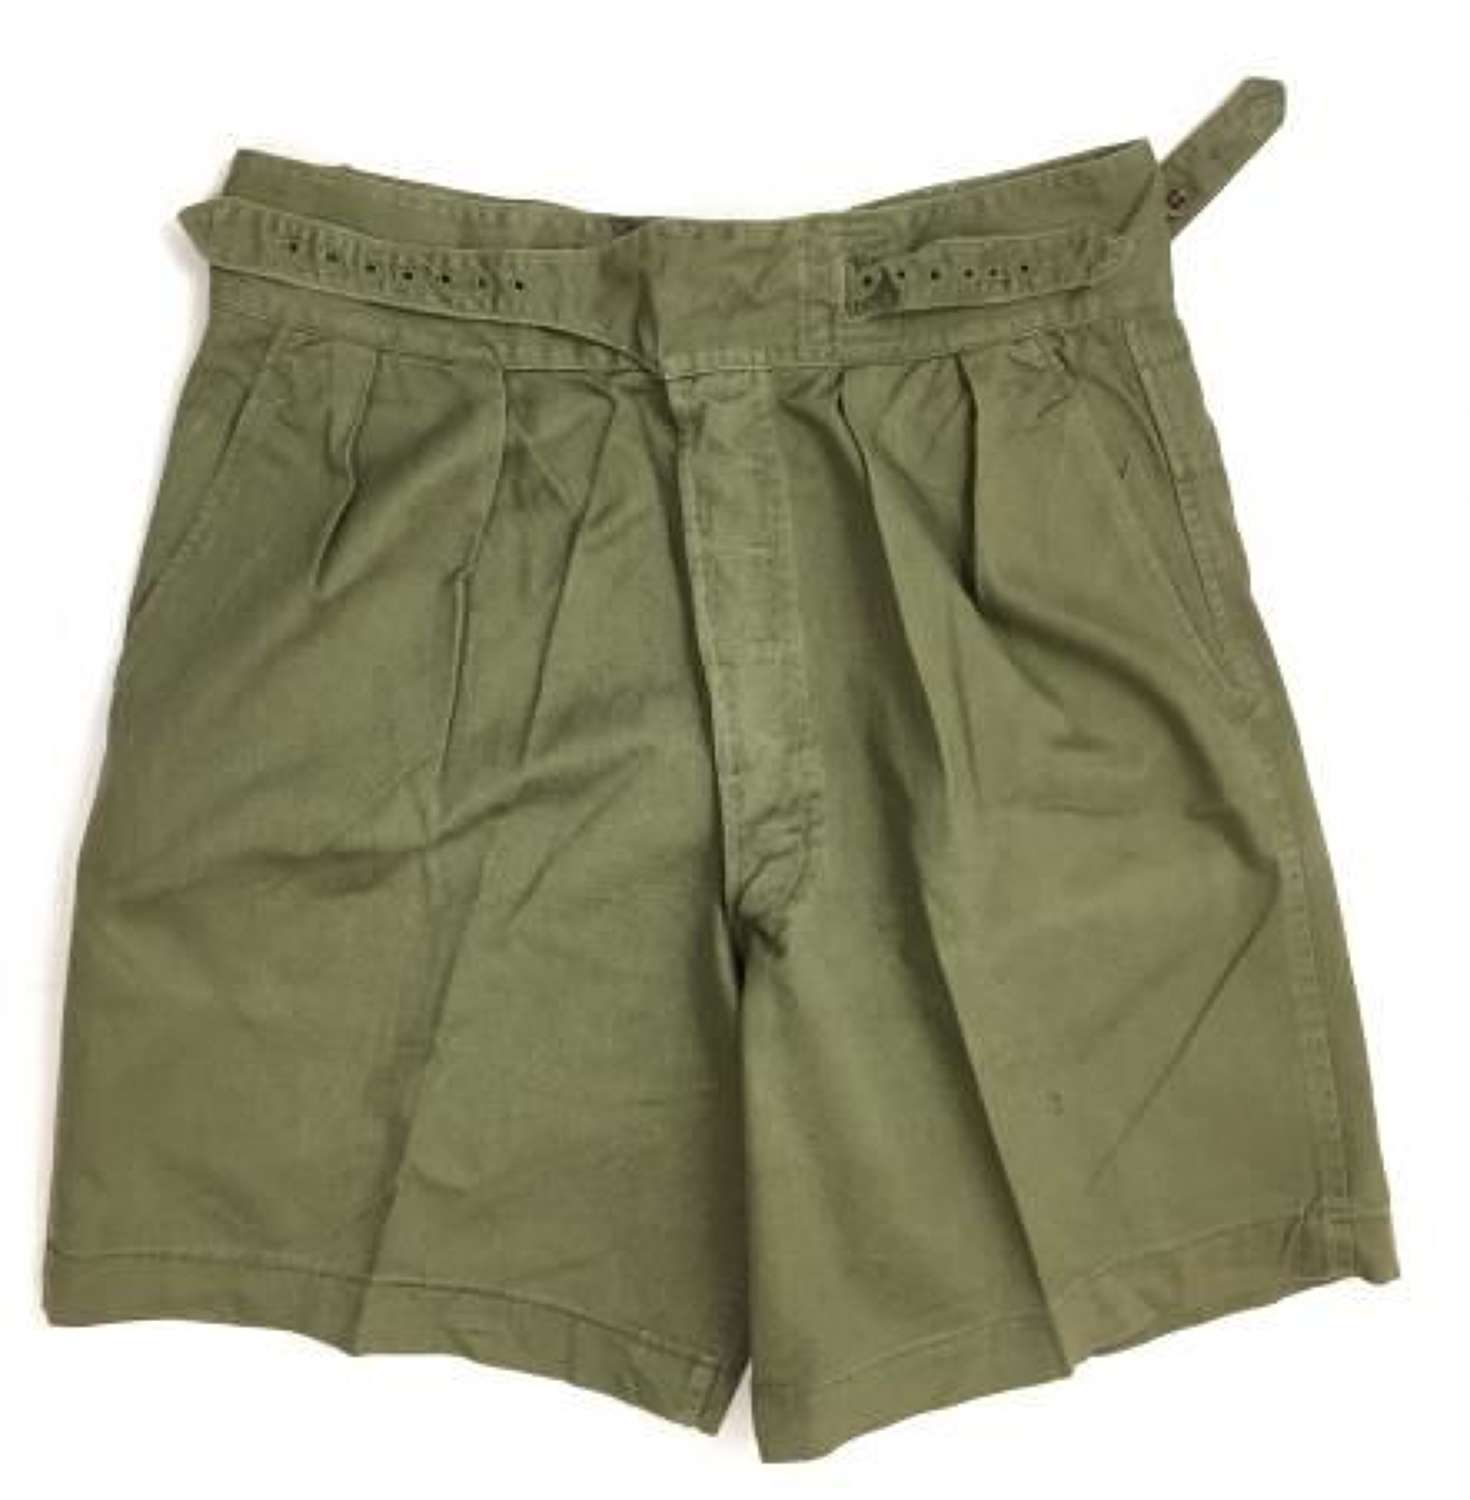 Orginal 1957 Dated 1950 Pattern Jungle Shorts